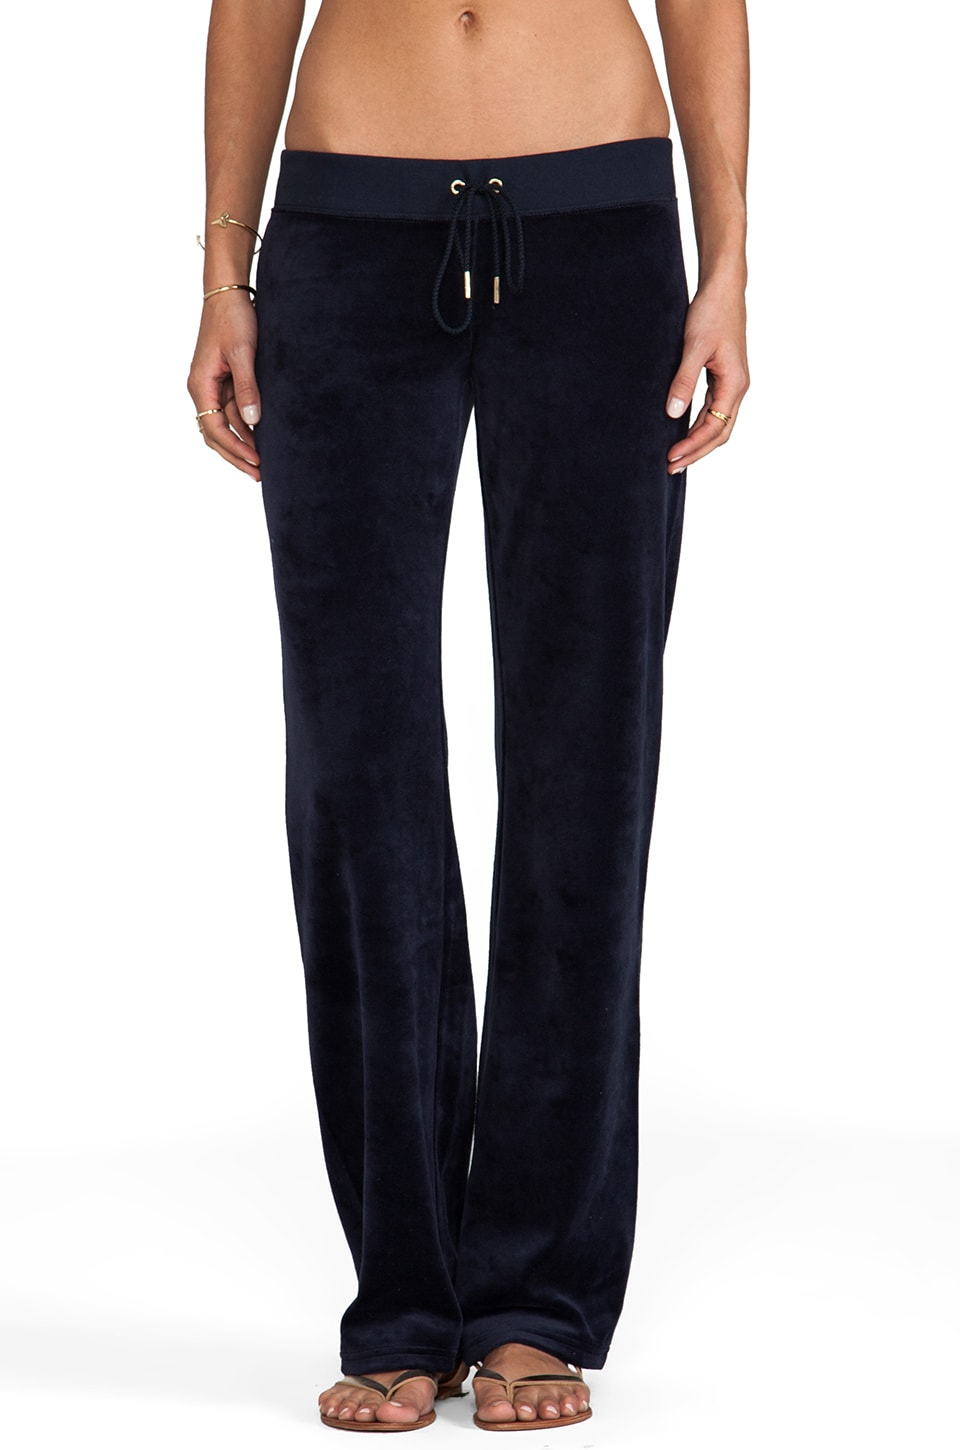 Juicy Couture J Bling Velour Original Leg Pant in Regal